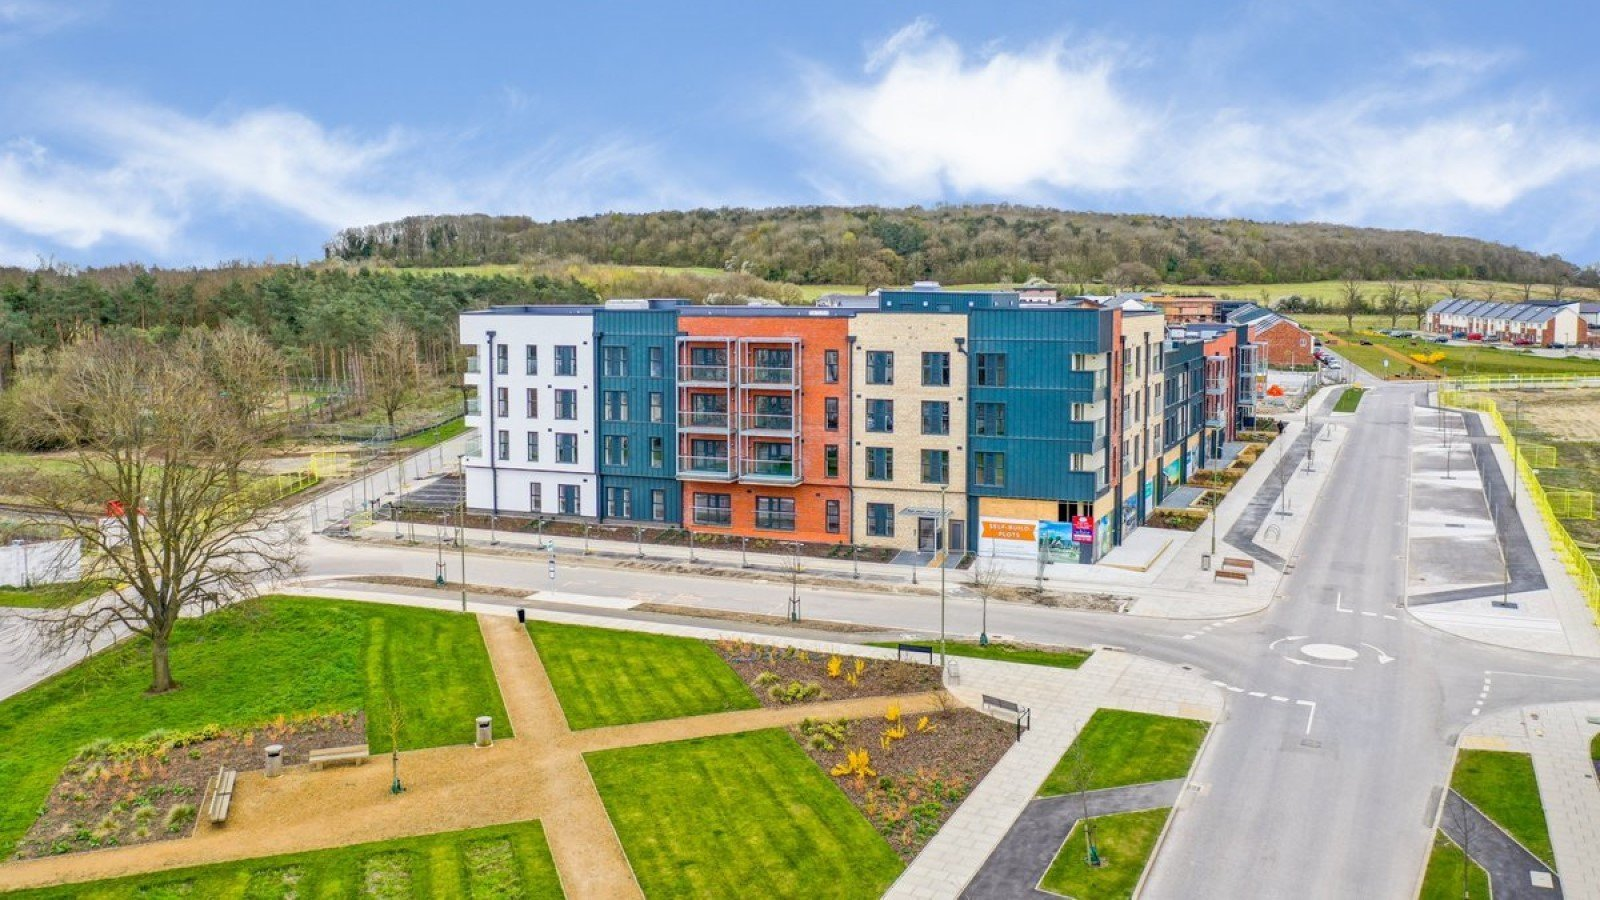 Growing interest in new retail/office units at Graven Hill